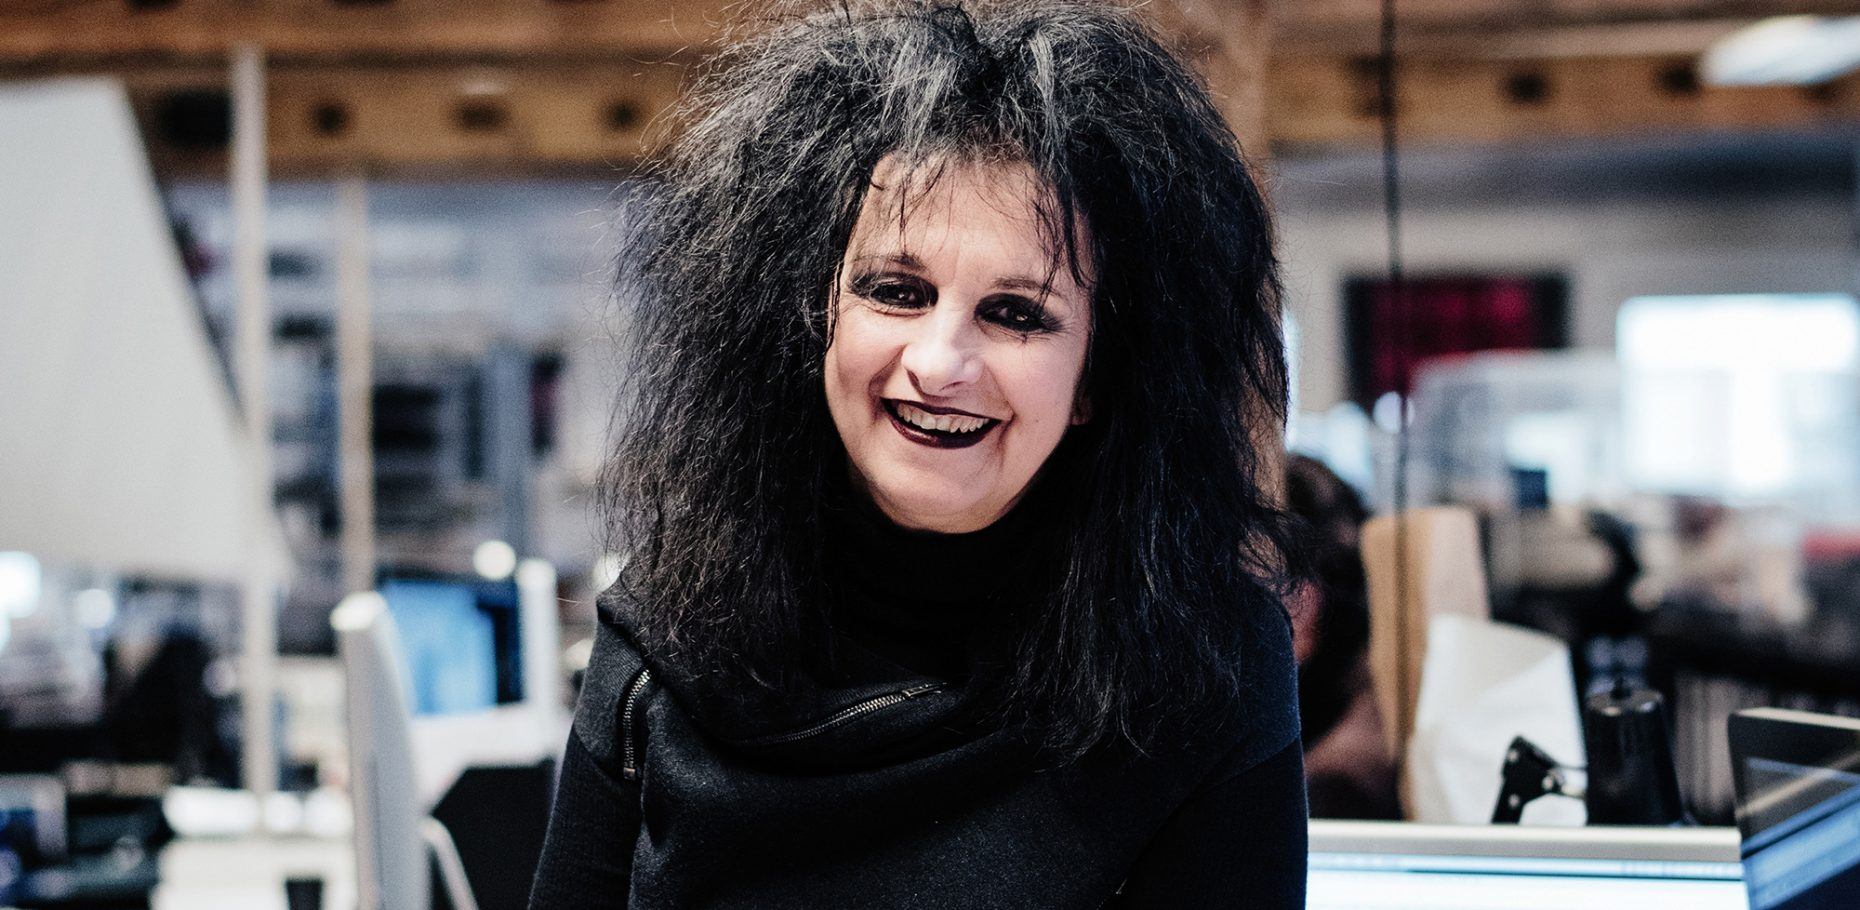 Odile Decq, founder of Studio Odile Decq in Paris and director of the private architecture university Confluence Institute for Innovation and Creative Strategies in Architecture in Lyon, France